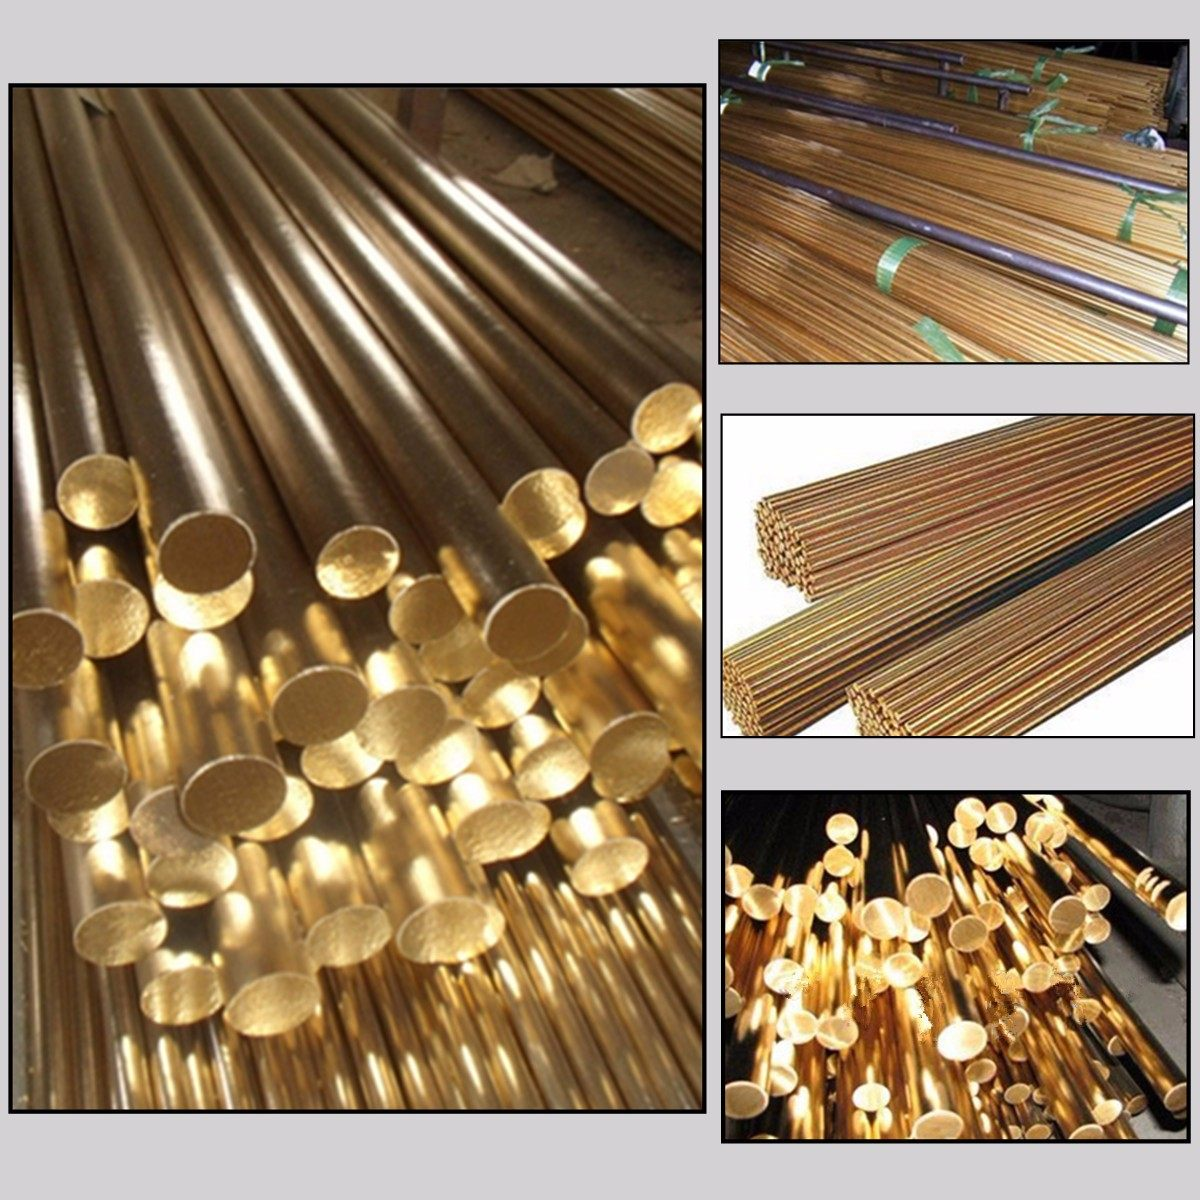 5 Pieces 1//4 1//2 /& 5//8 360 BRASS ROUND ROD 10.5 long Solid 5//16 3//8